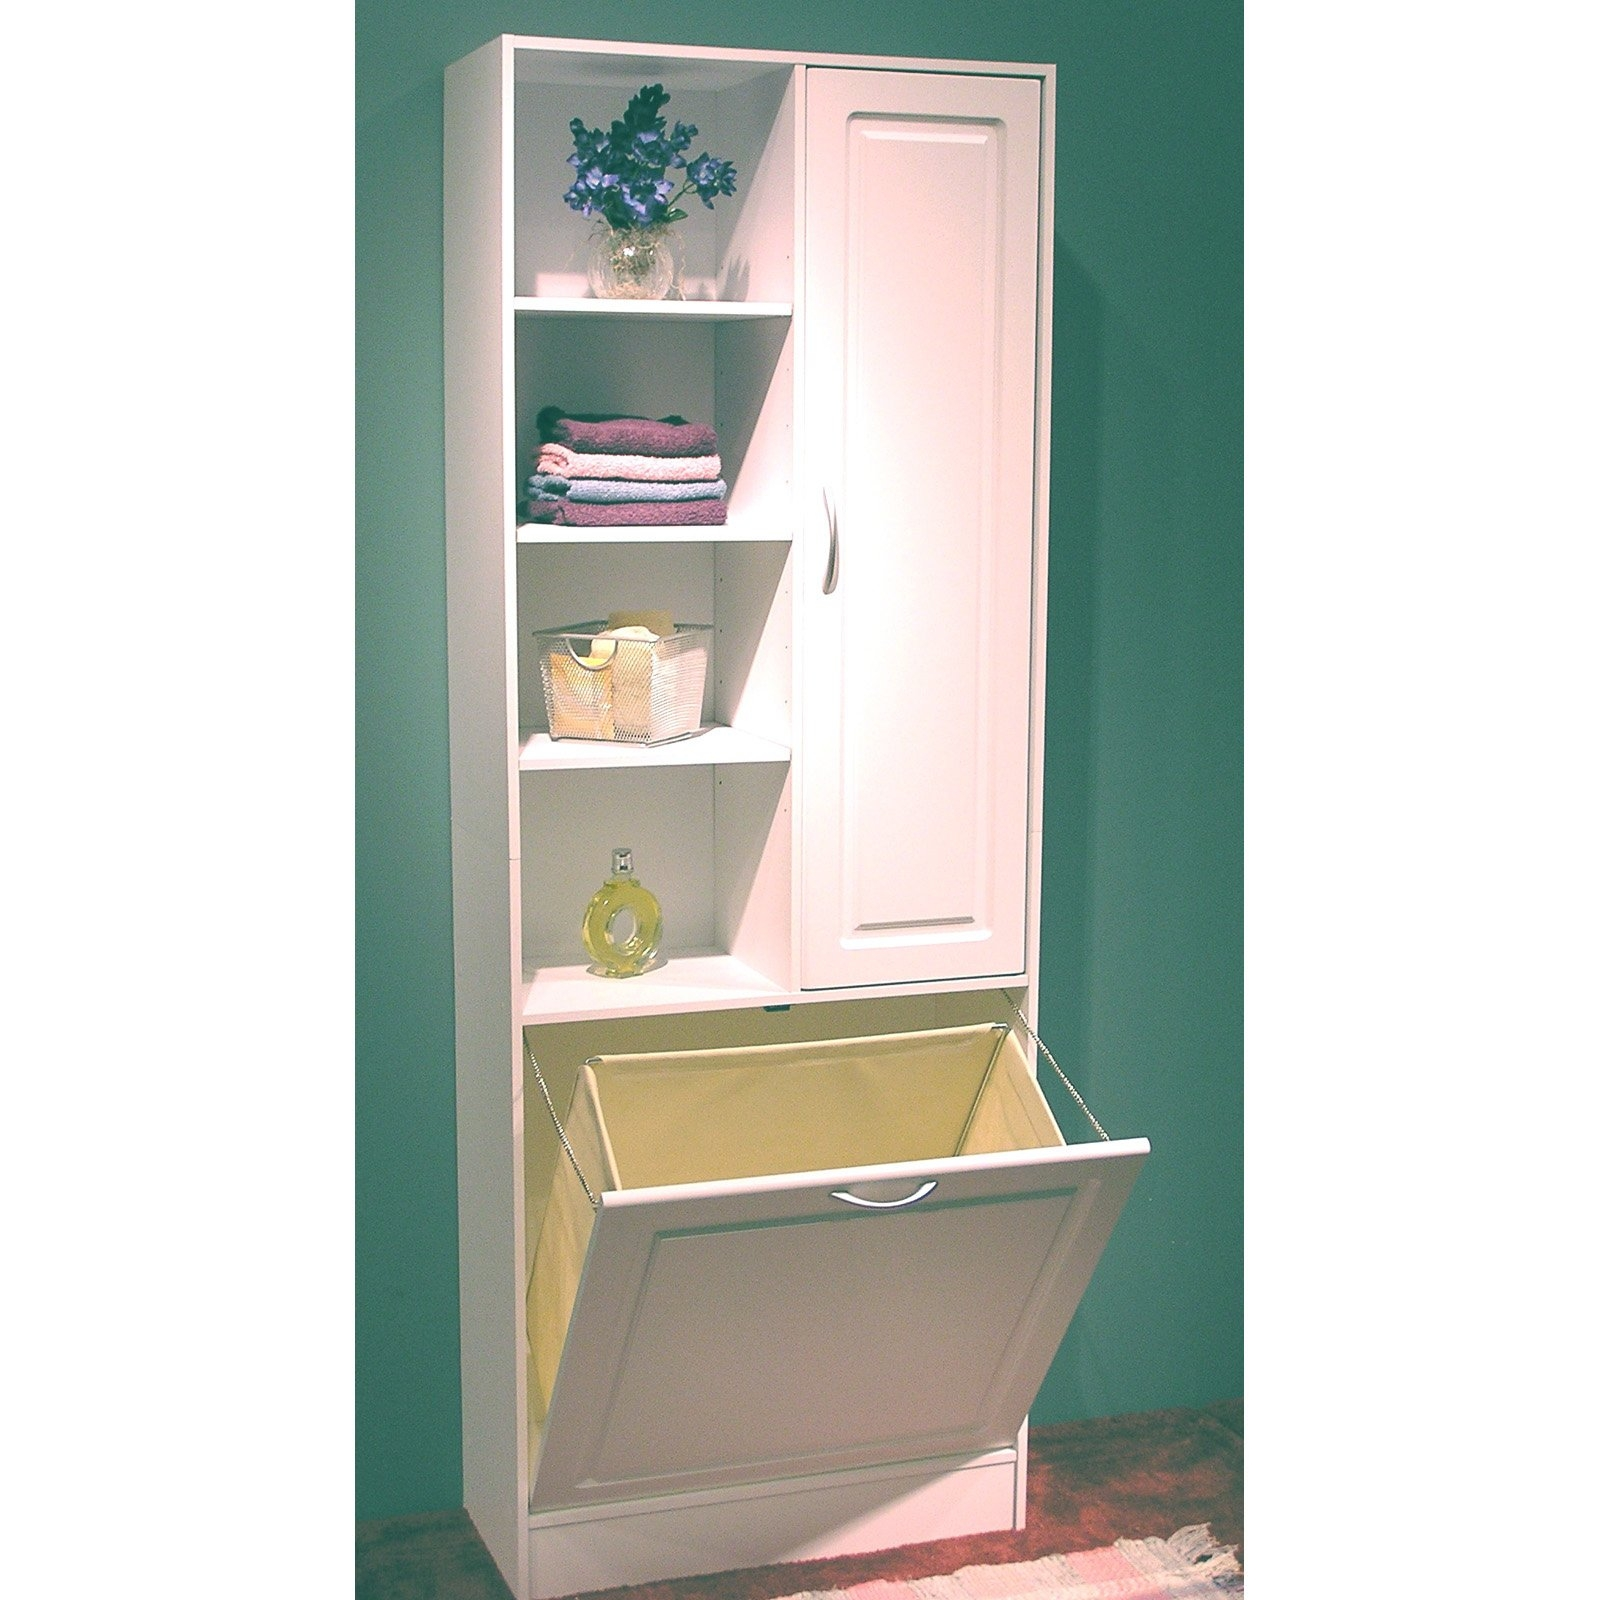 Bathroom Cabinets With Laundry Basket1600 X 1600